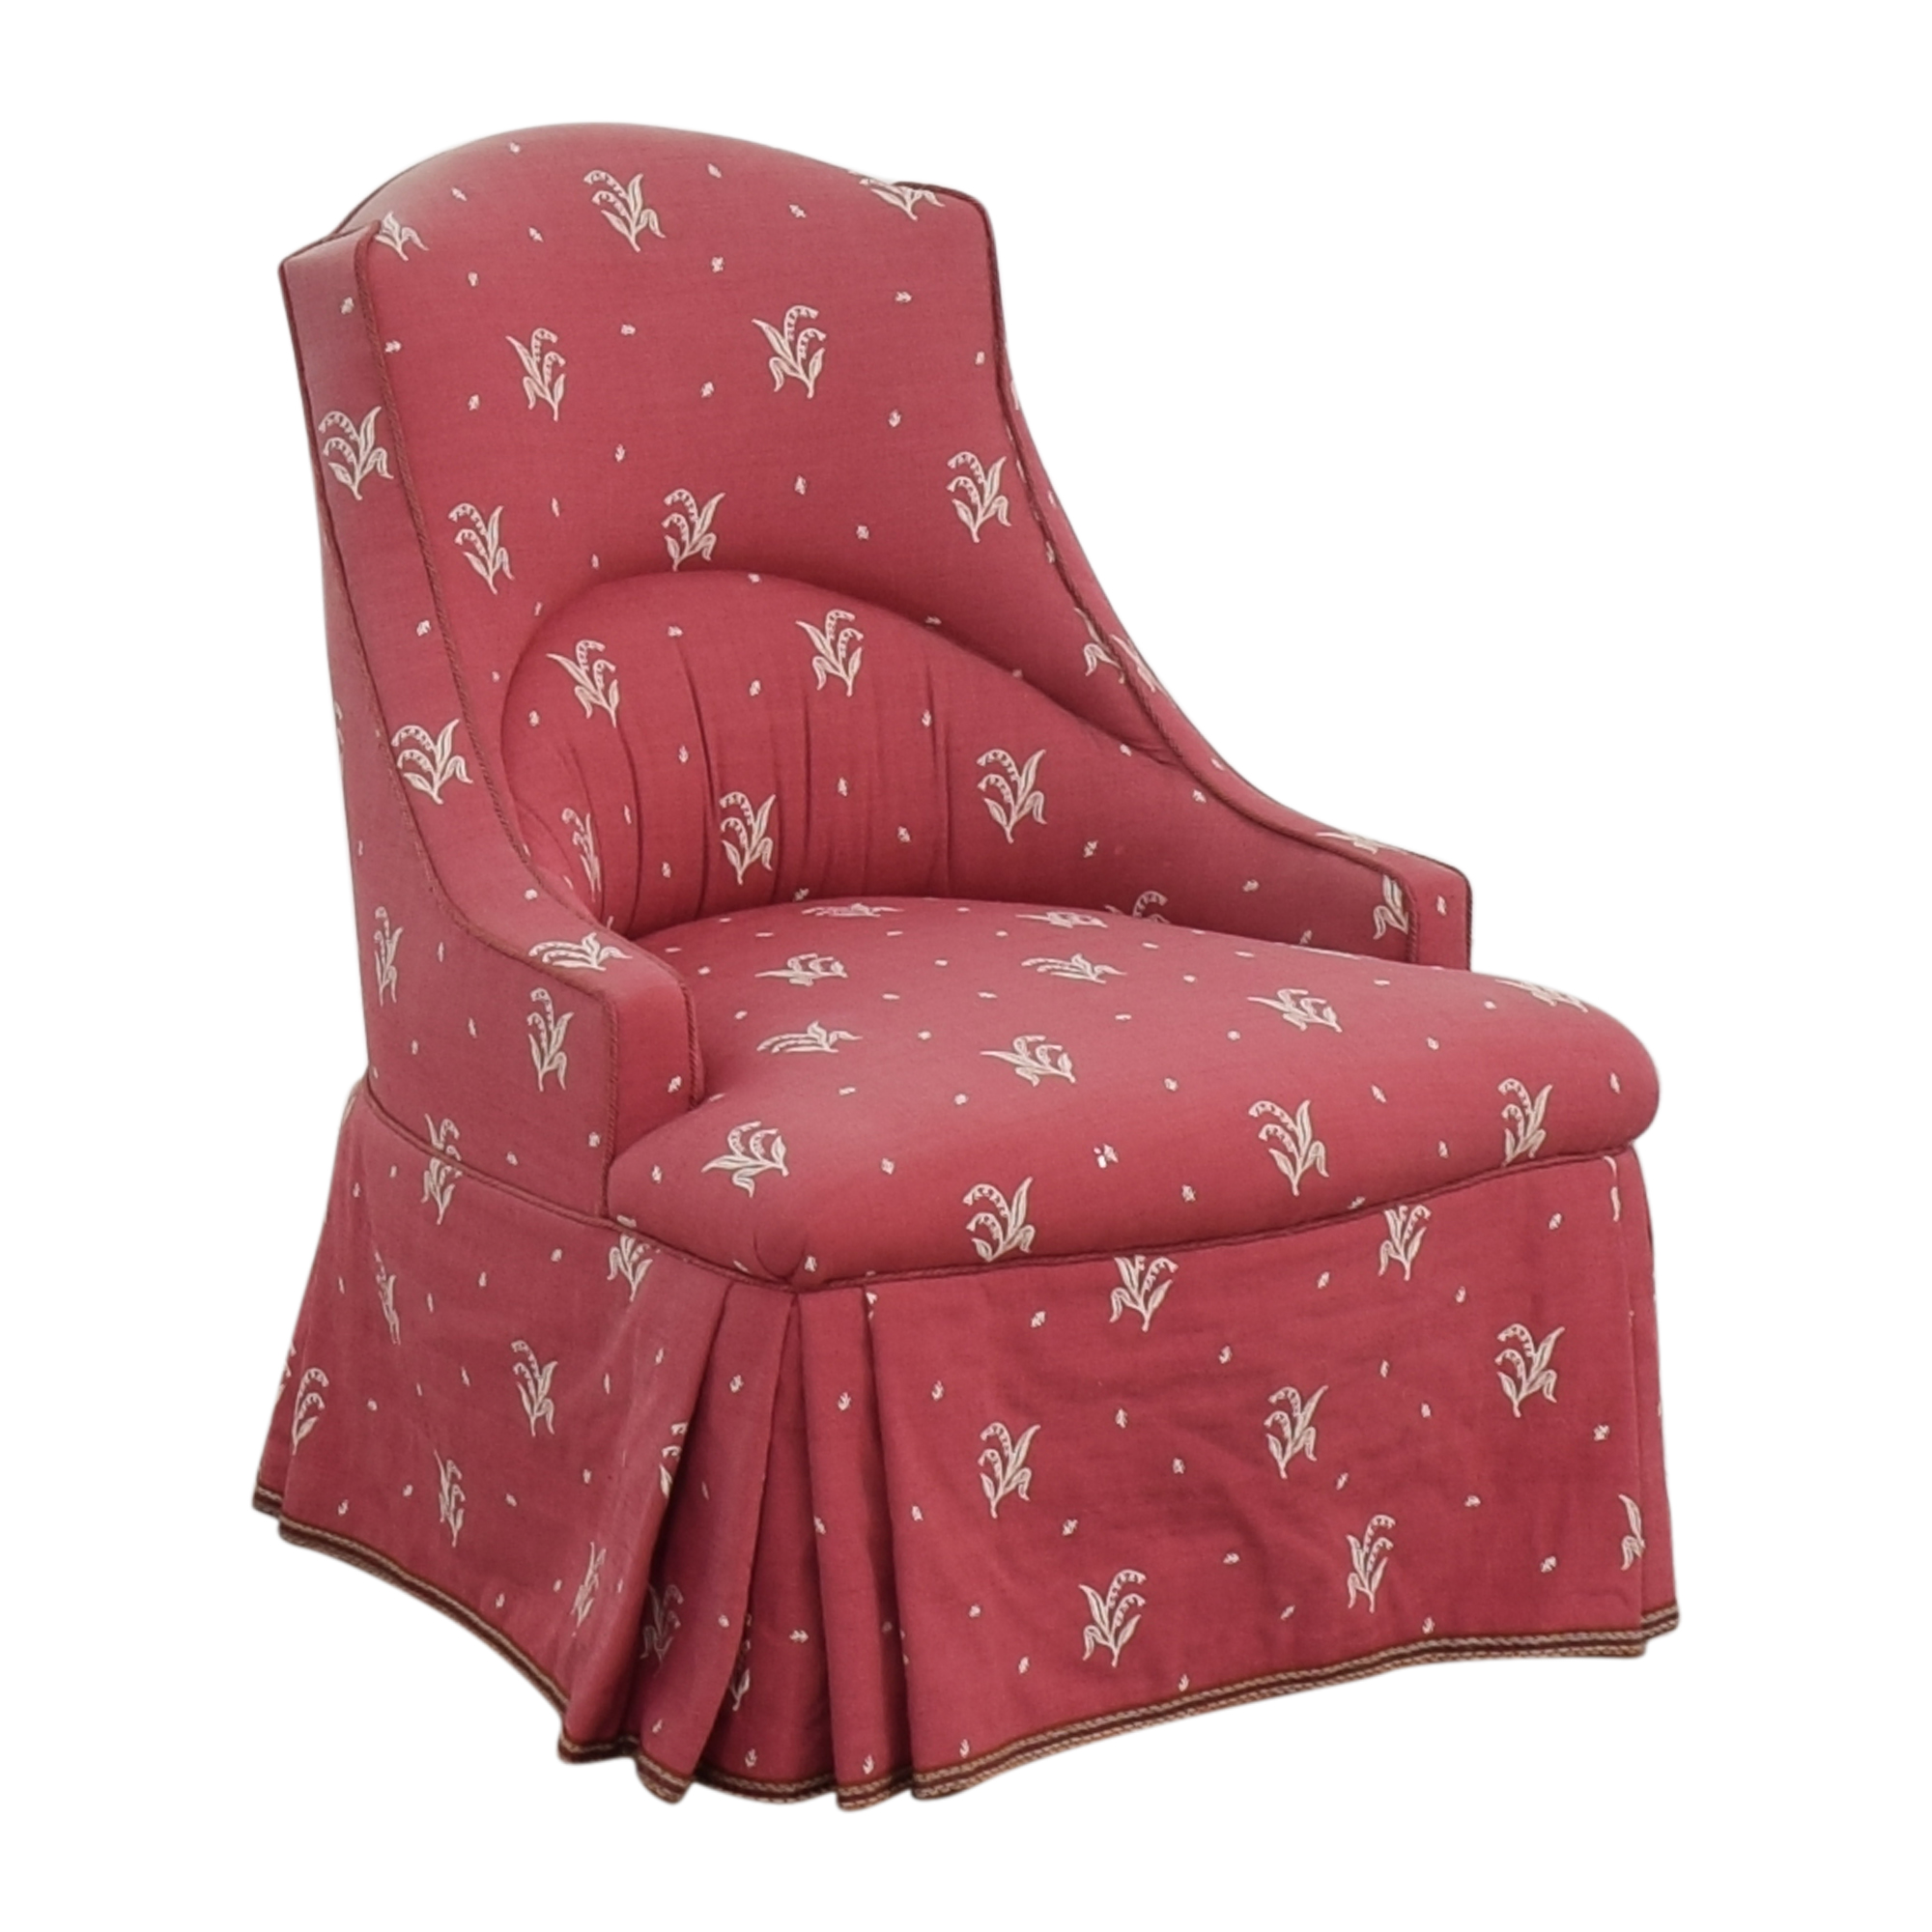 Patterned Skirted Slipper Chair dimensions